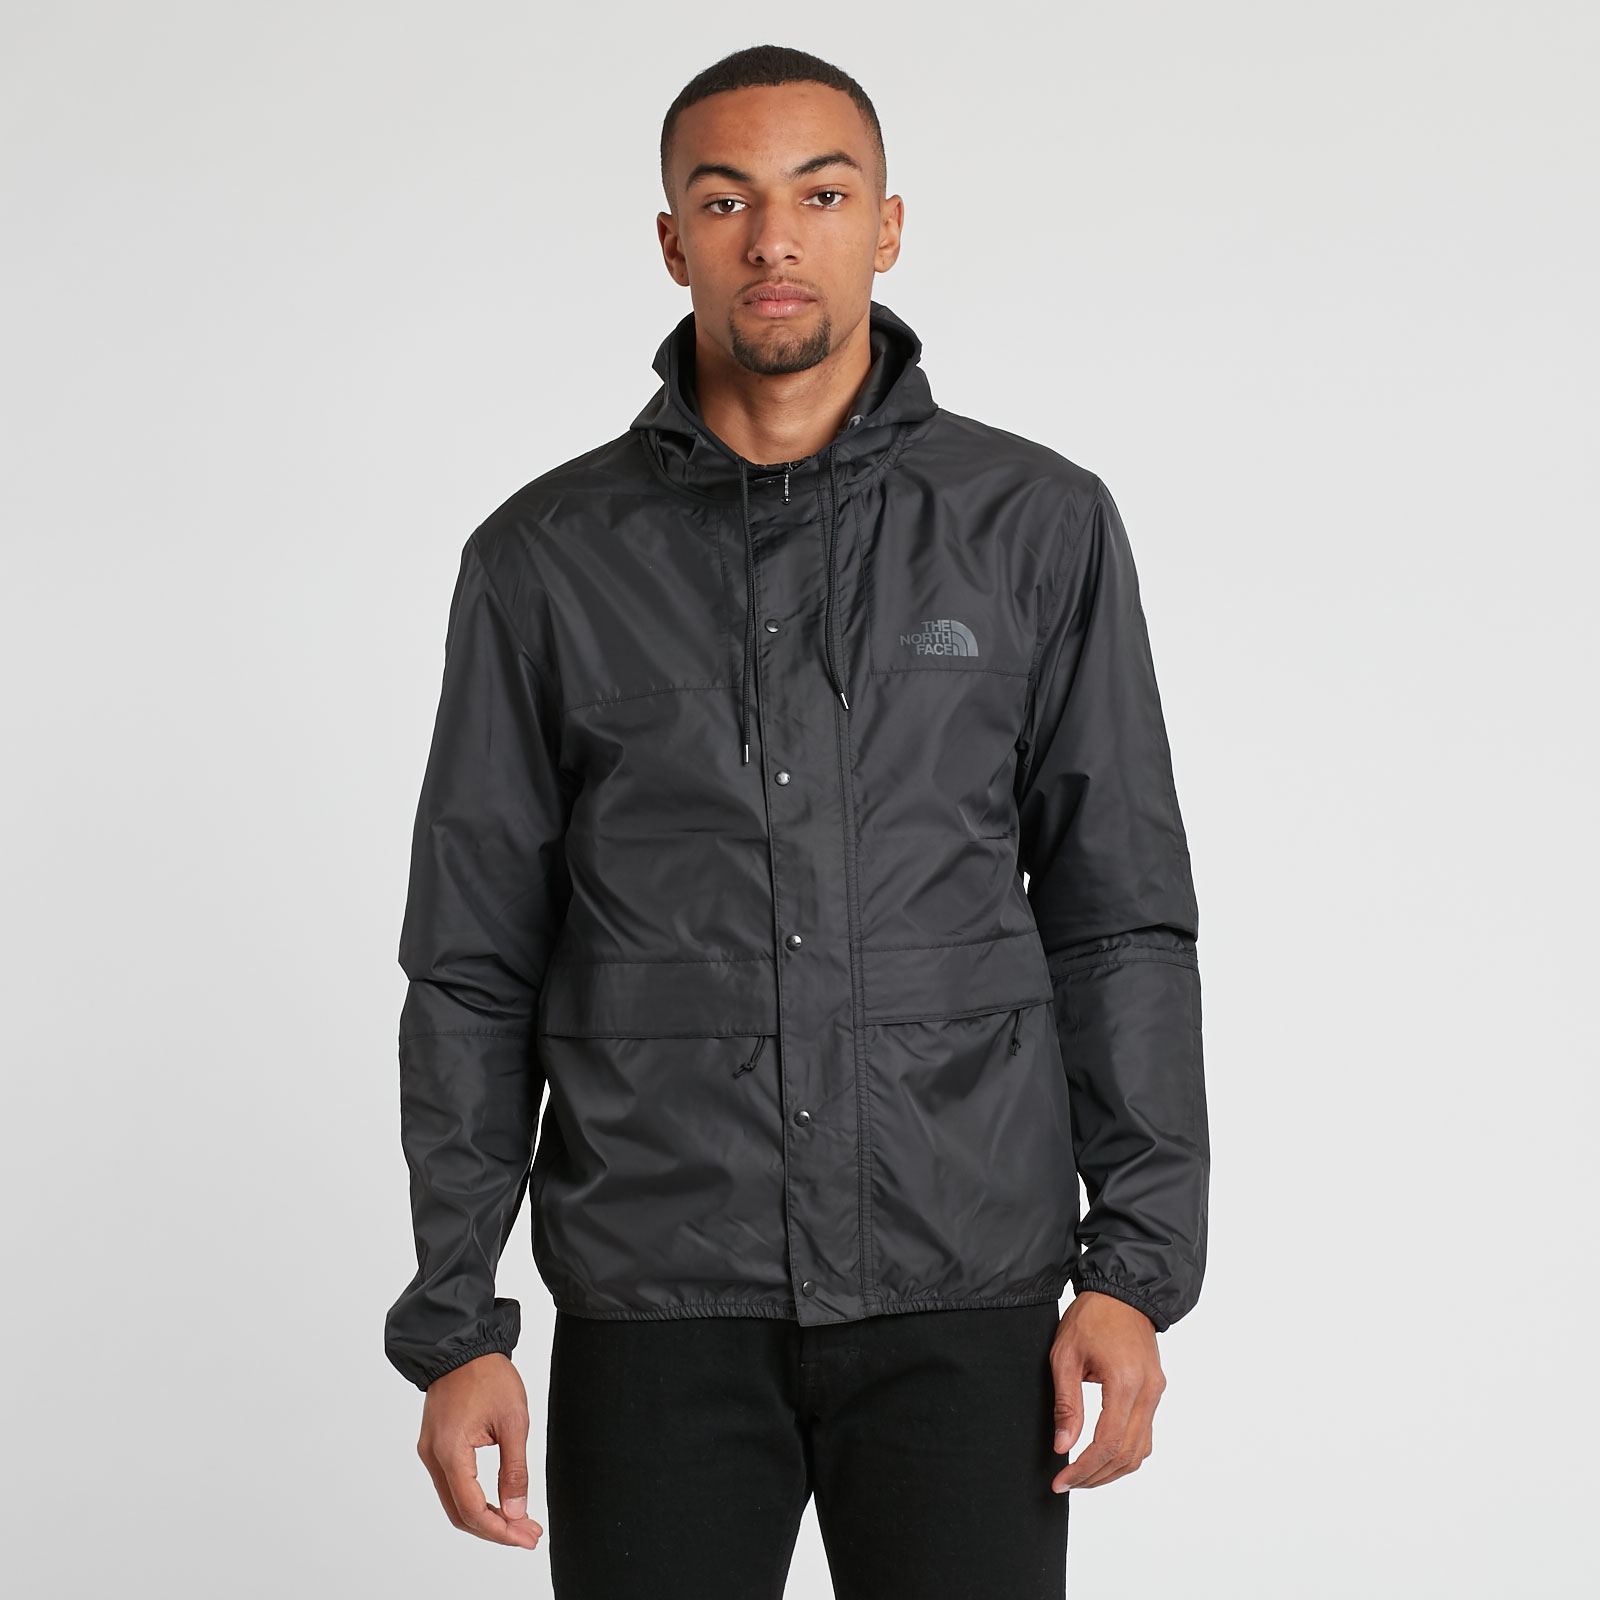 1726ba0d5 The North Face 1985 Seasonal Mountain Jacket - T0ch37jk3 ...